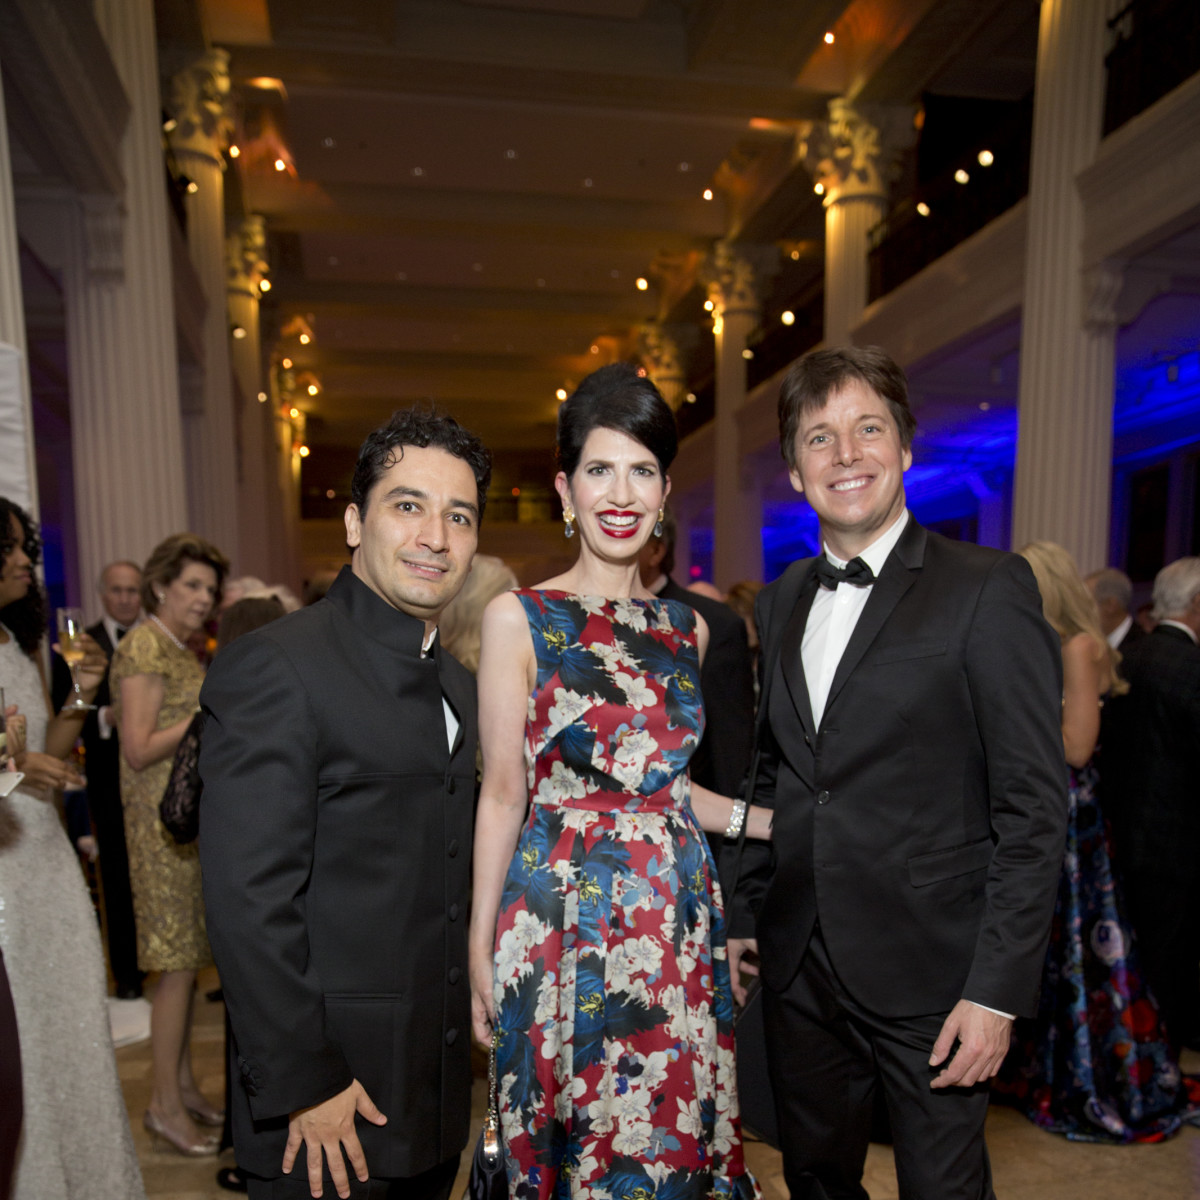 News, Shelby, Houston Symphony Opening Night, Sept. 2015, Andres Orozco-Estrada, Kelli Cohen Fein, Joshua Bell